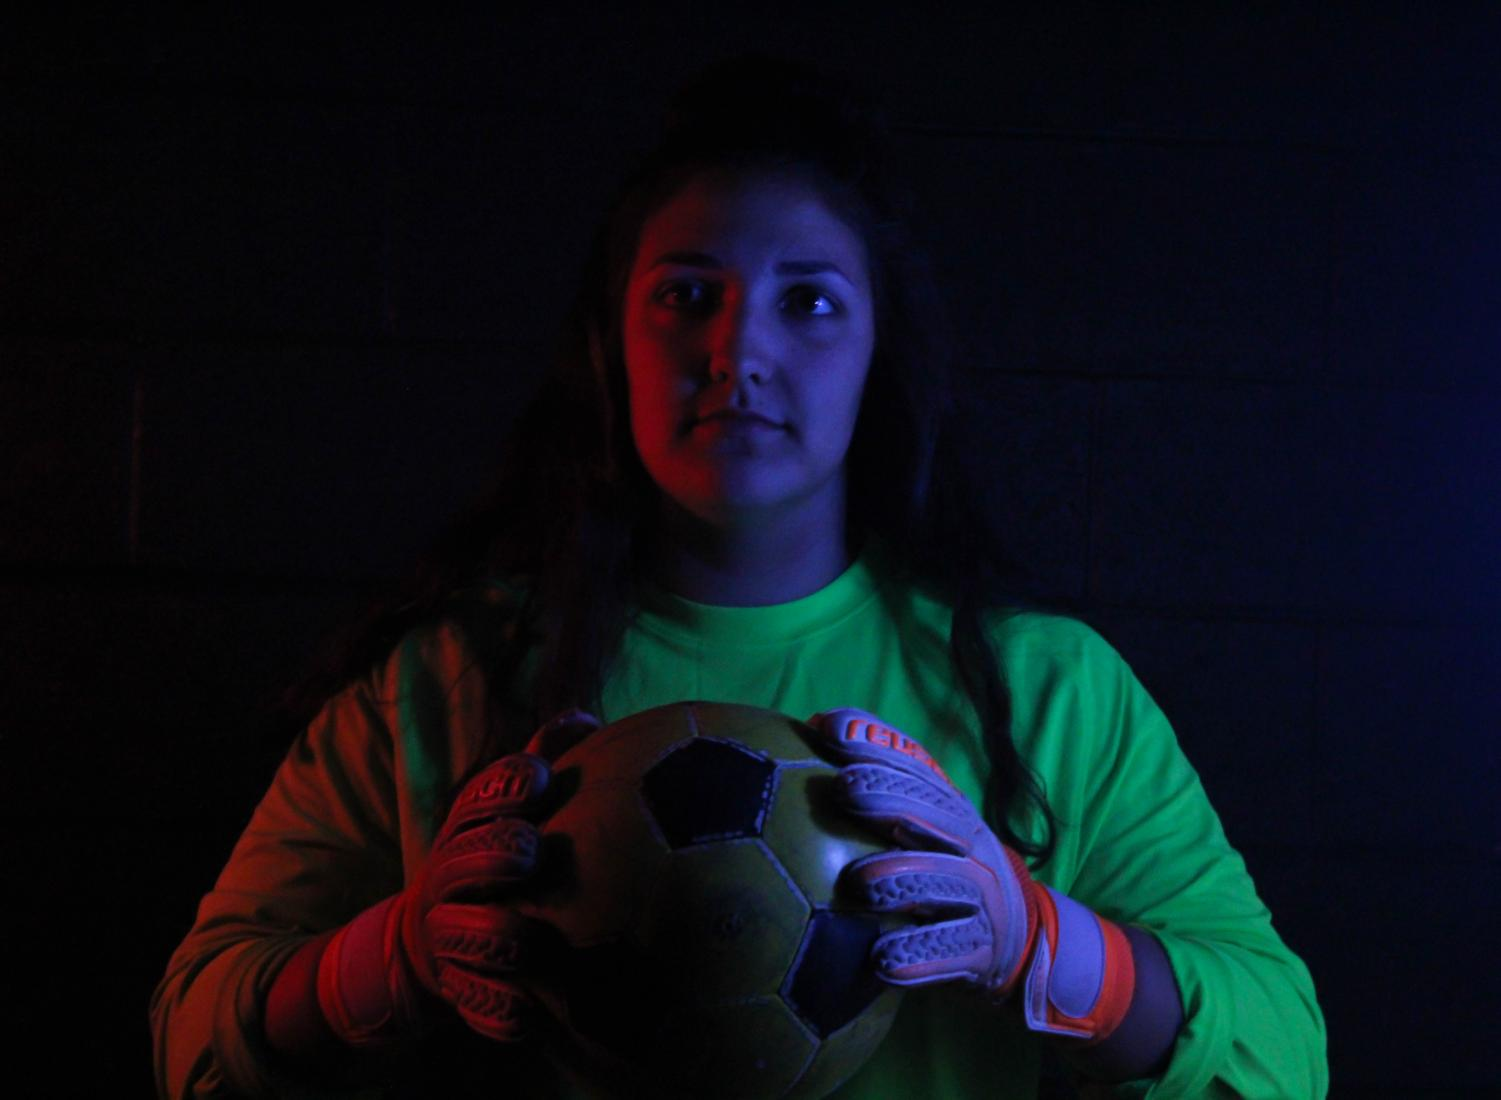 Alyssa Holladay (12) has shown remarkable leadership in all sports she takes part in, which has earned her title of Captain of the MSHS Girls' Soccer team. Her goal for this year is to keep the team tight-knit and connected throughout the whole season.